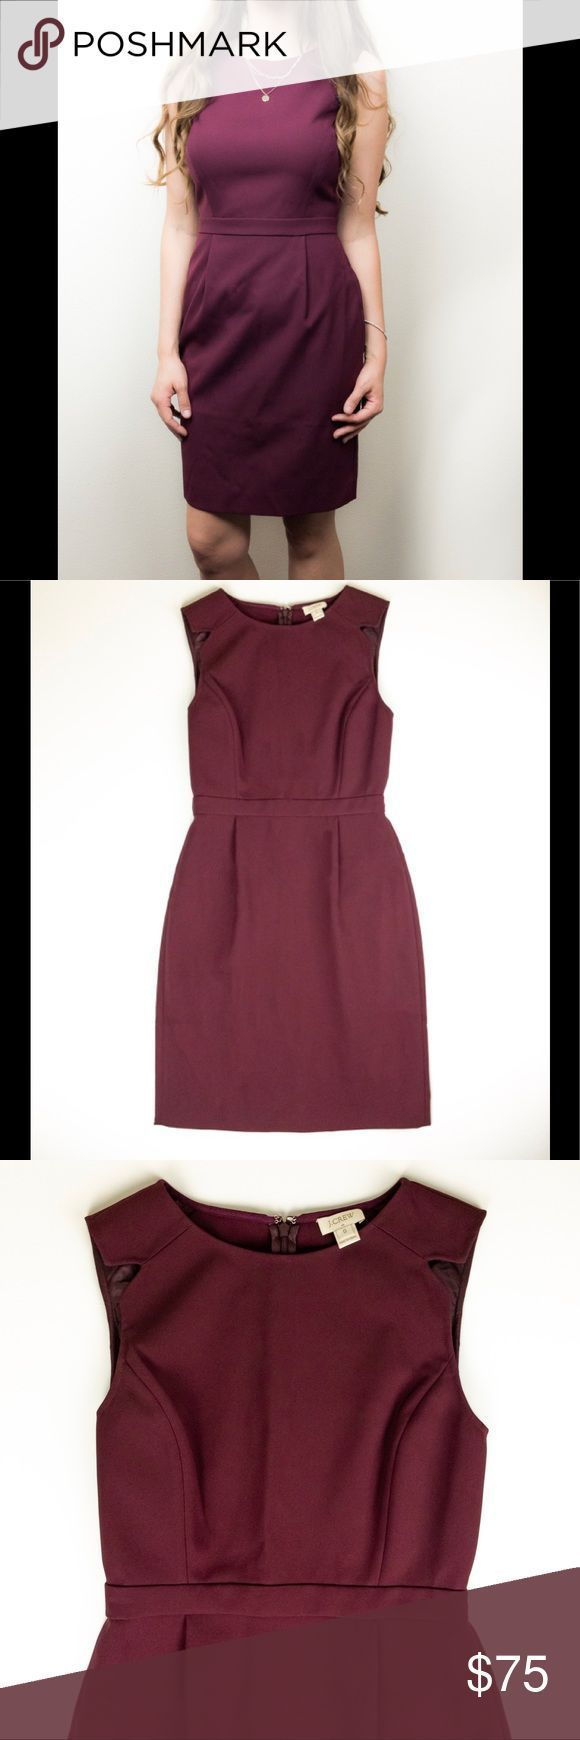 J. Crew Burgundy Dress This dress is perfect for a wedding guest, or a cocktail …